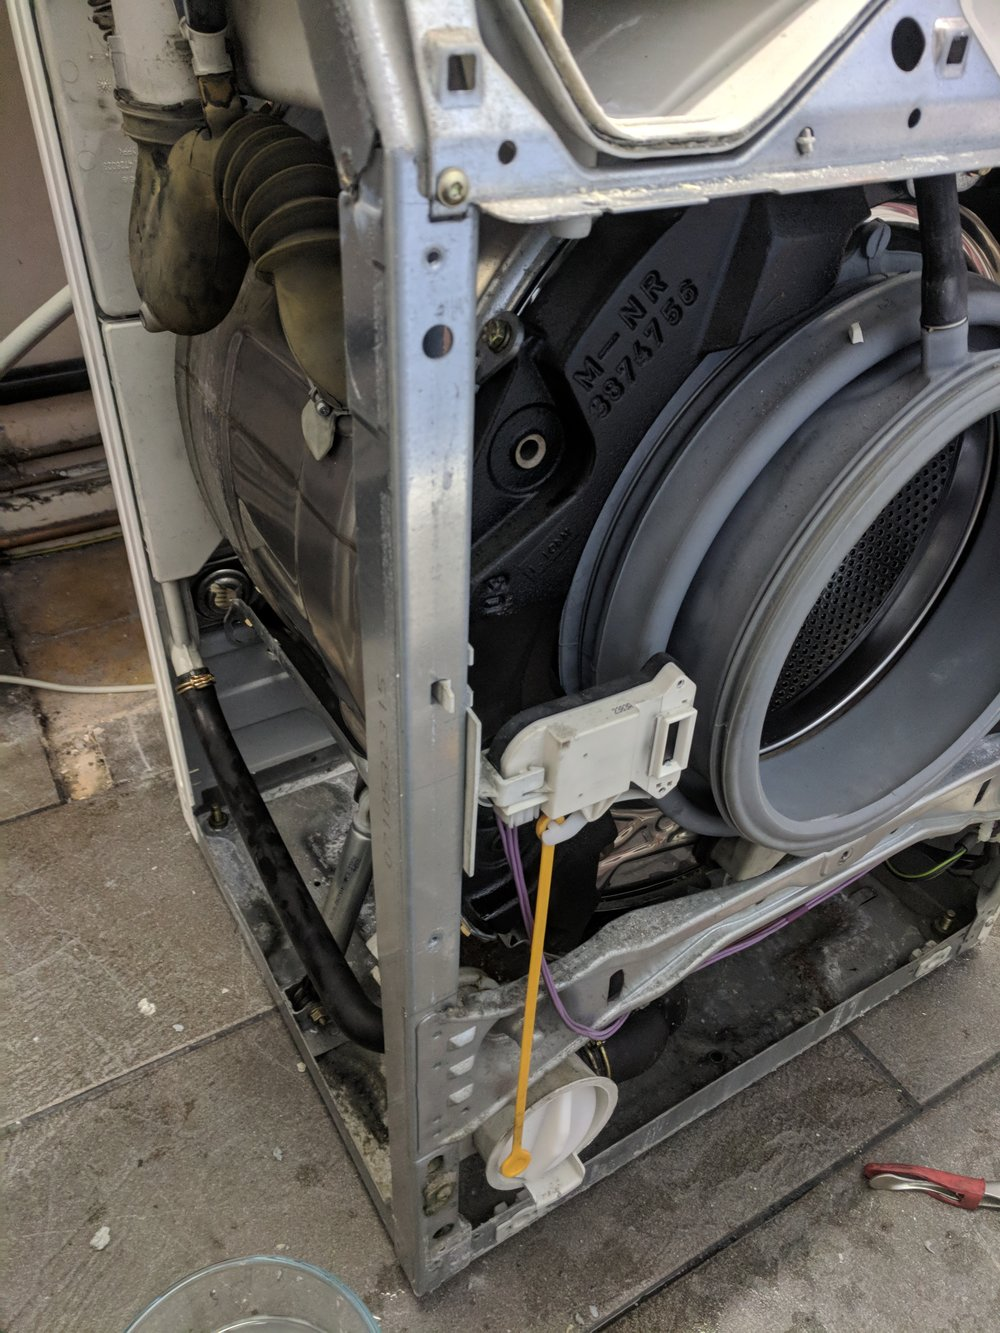 A Miele washing not draining machine. We stripped the machine to find a blockage stopping the machine from draining. The bill for this job was £49.